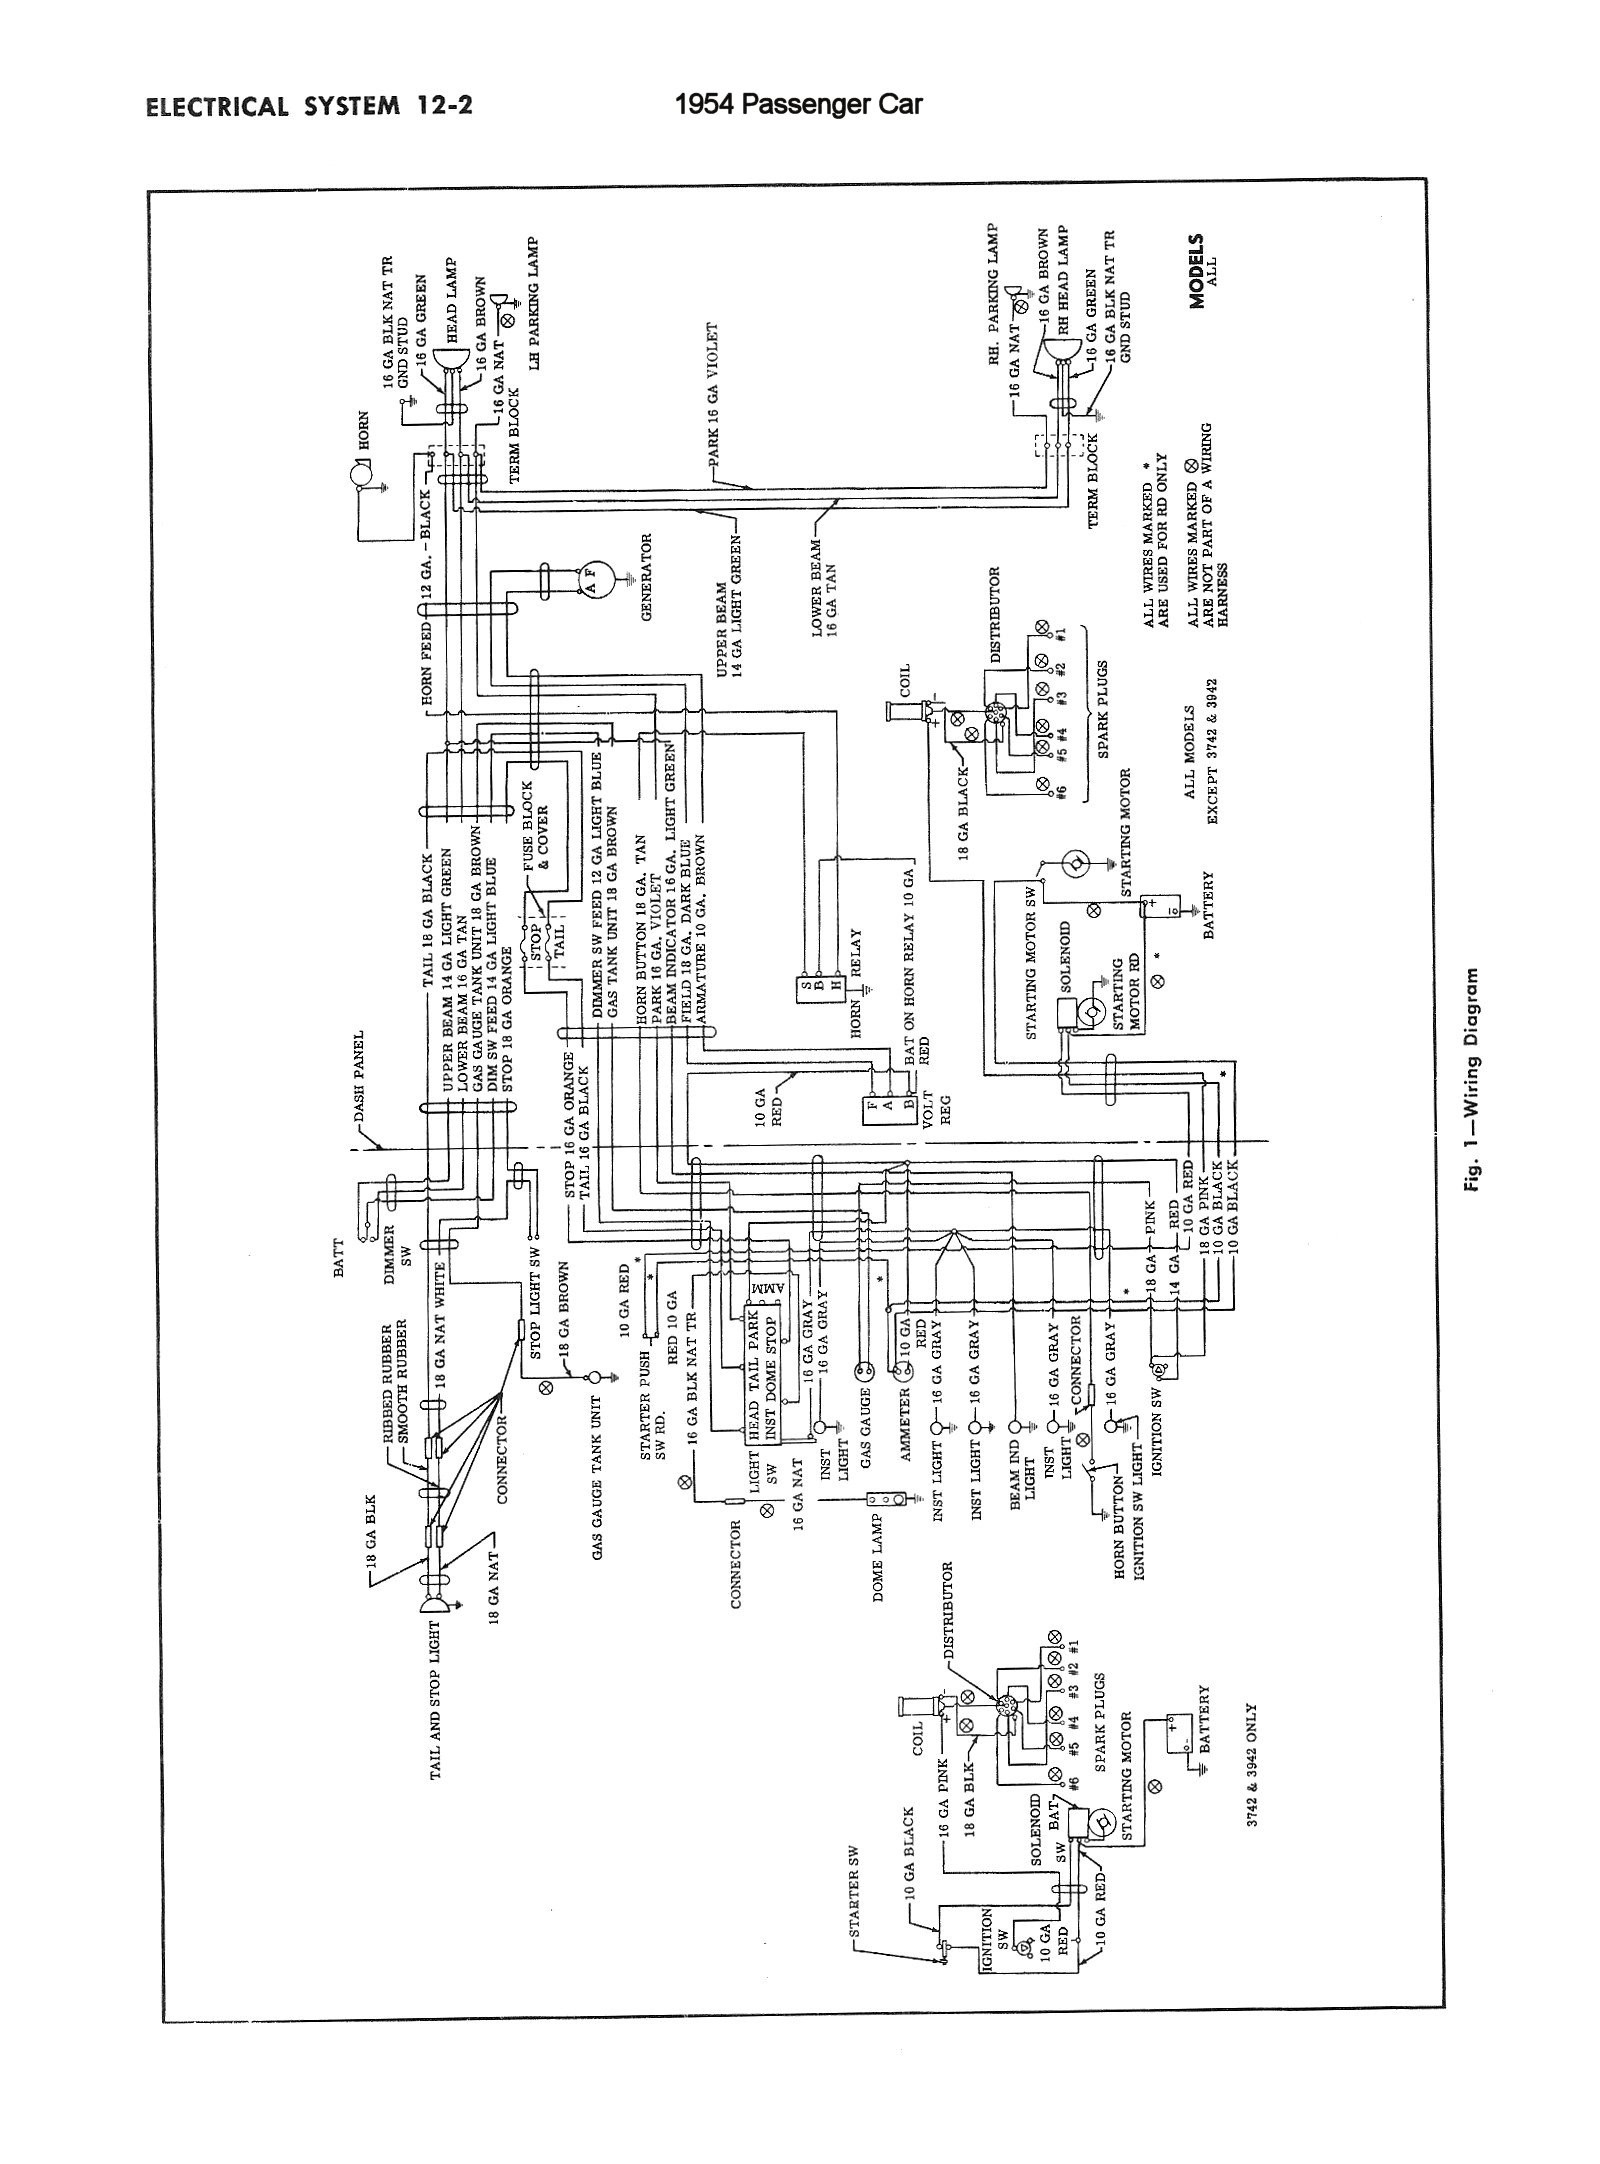 chevy headlight switch wiring diagram Collection-Wiring Diagram for Vw touareg Best 1955 Chevy Headlight Switch Wiring Diagram 1955 Car Body Wiring 7-a